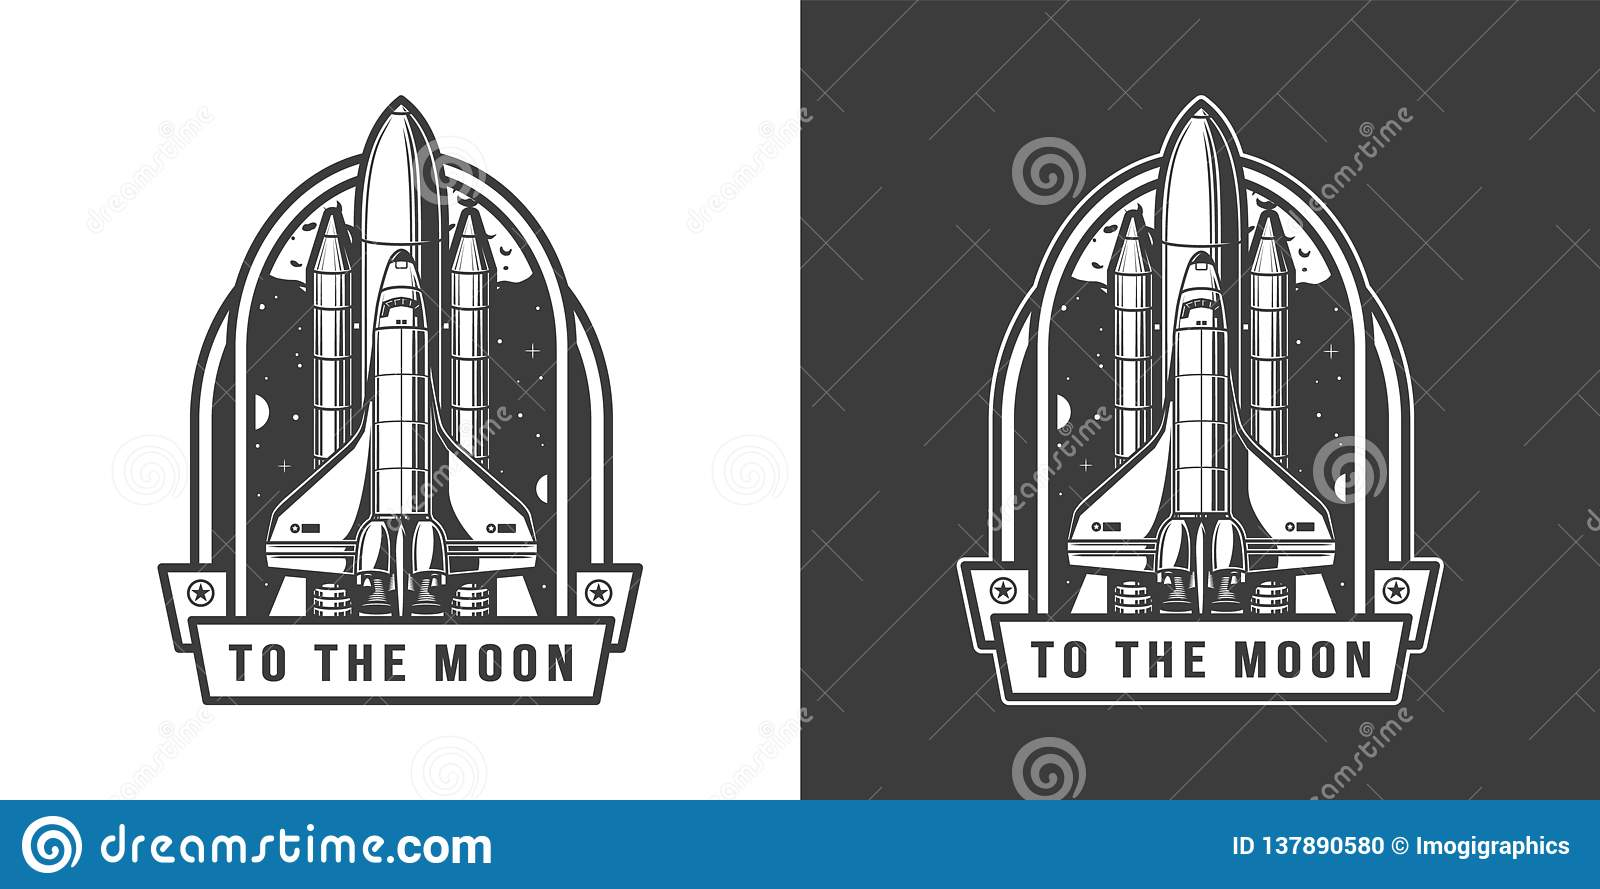 Space shuttle flying to moon emblem